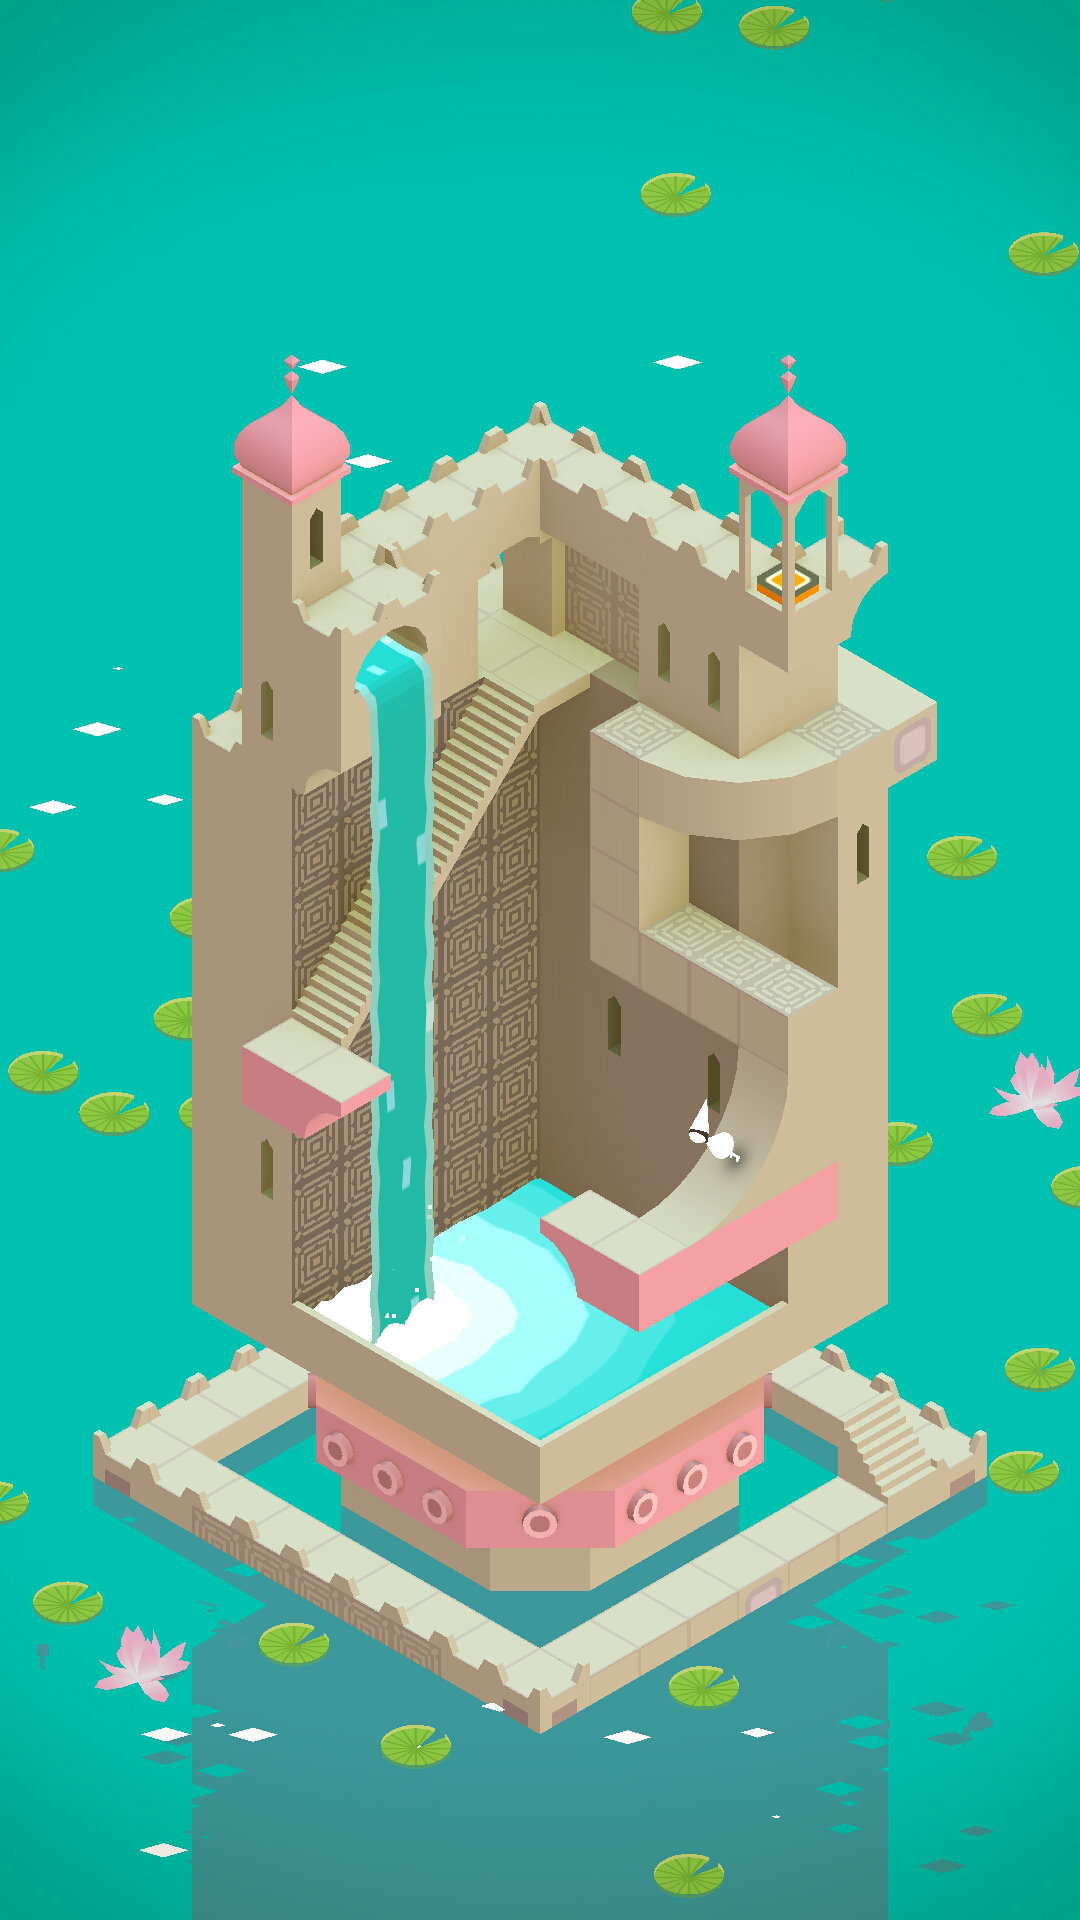 Monument Valley is a Delicate Surreal Exploration